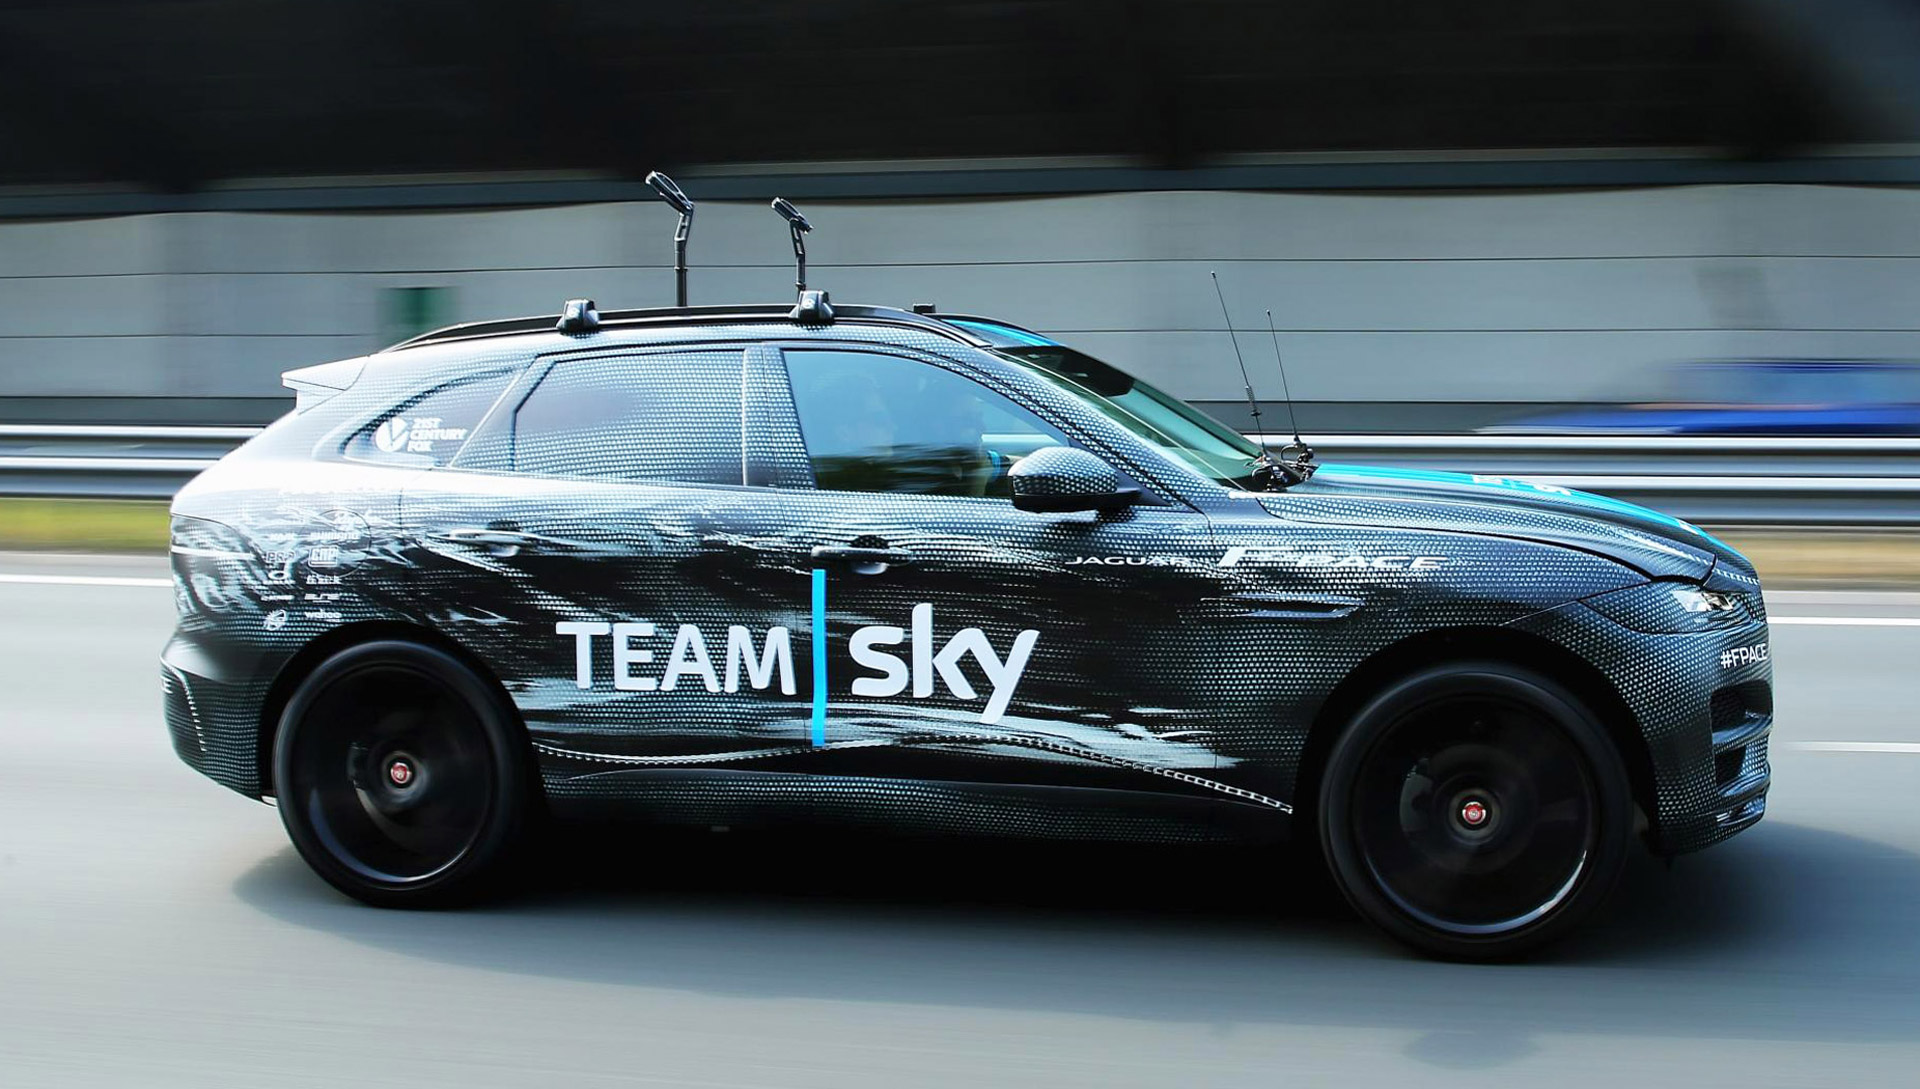 Jaguar F Pace Plug In Hybrid >> Jaguar 'EV-Type' To Be All-Electric F-Pace To Compete With Tesla?